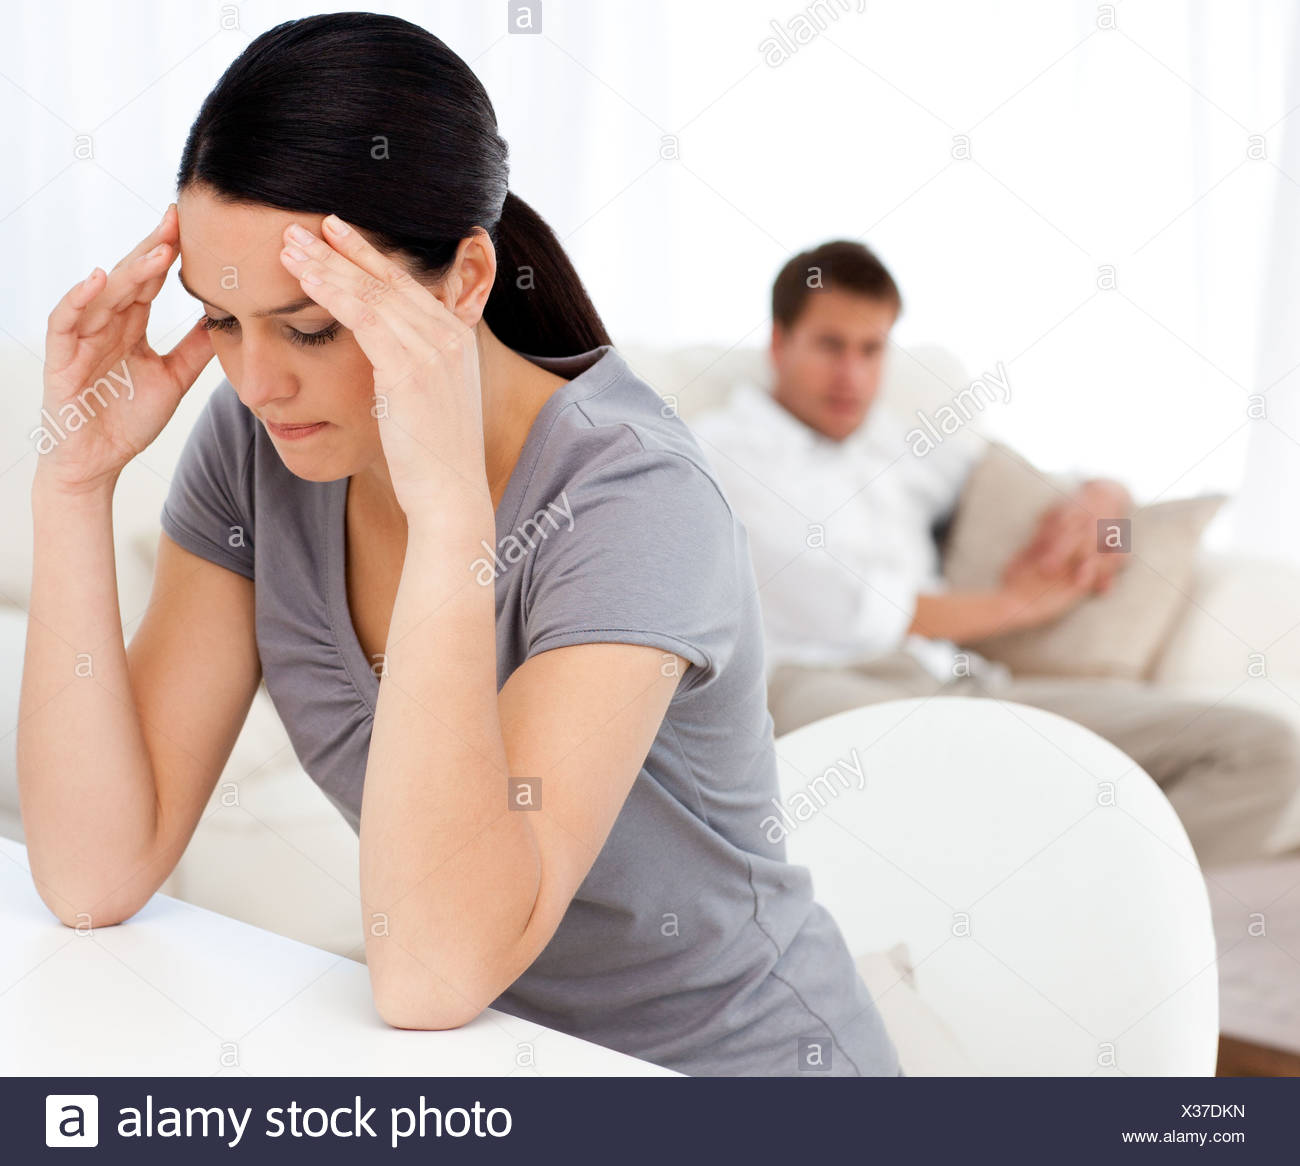 Man looking at his girlfriend having a headache sitting at a table - Stock Image